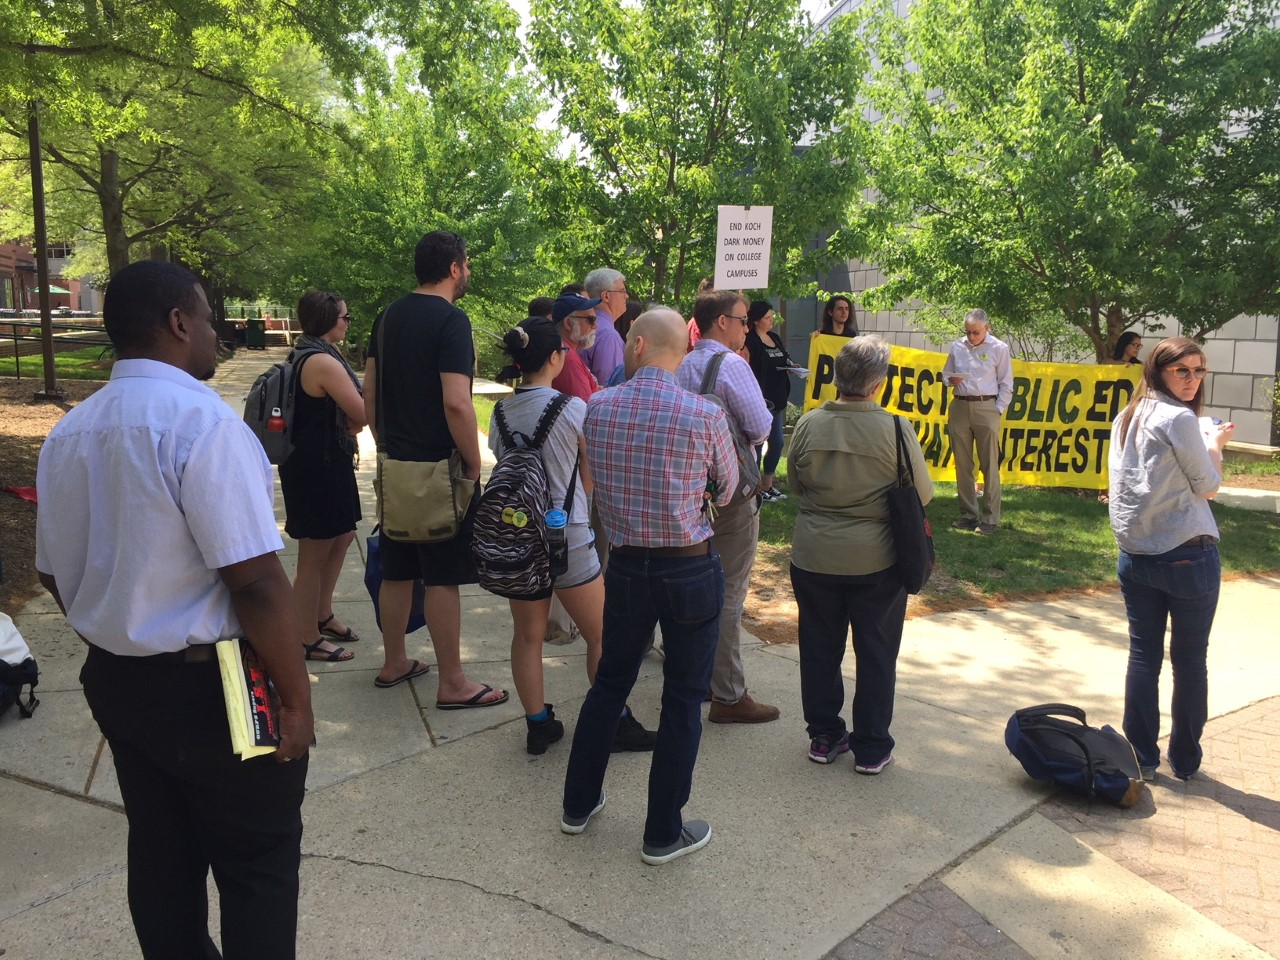 """""""We want all gift agreements to be made public so we can discern the full extent of the academic violations that have been occurring here,"""" said Bethany Letiecq, Faculty senator and president of the GMU chapter of the American Association of University Professors. (WTOP/Kristi King)"""